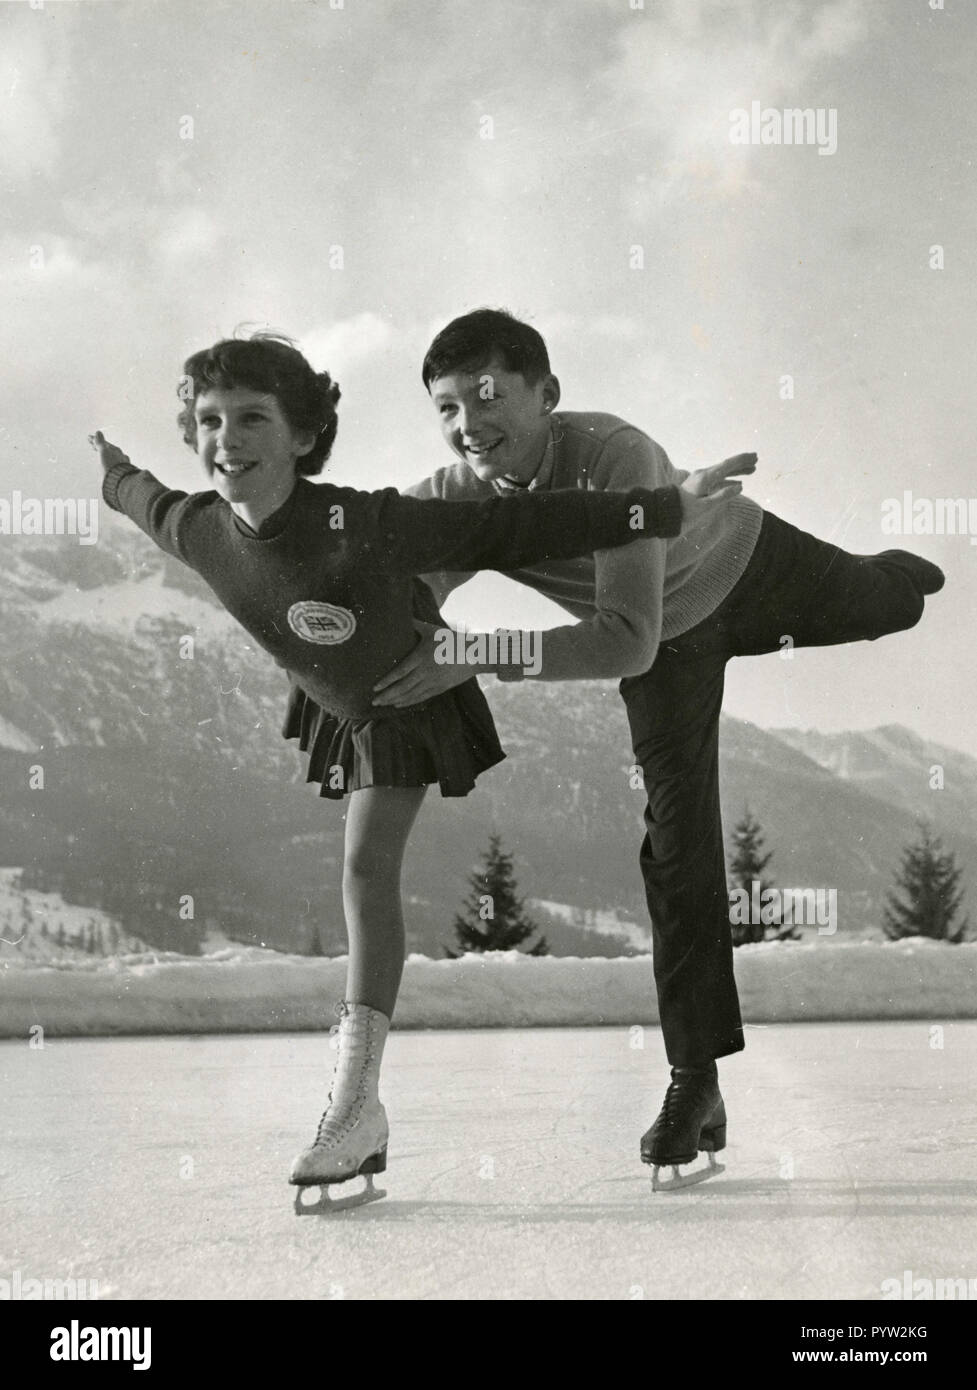 British figure skating Roday Ward and Caroline Krau at the Winter Olympics, Cortina D'Ampezzo, Italy 1956 - Stock Image